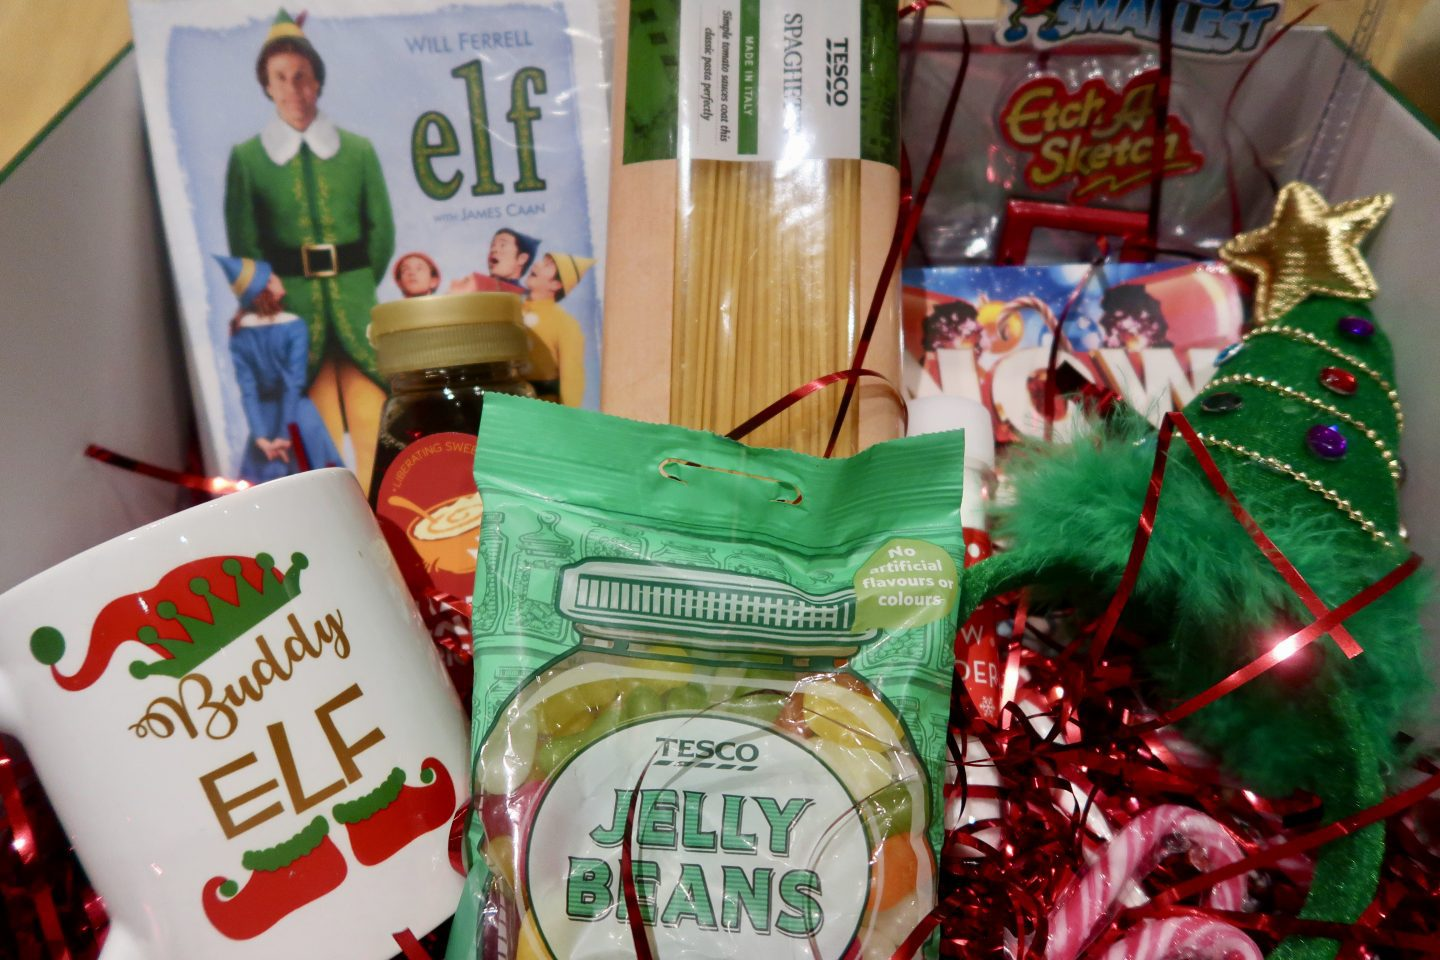 Buddy The Elf – What's Your Favourite Colour?